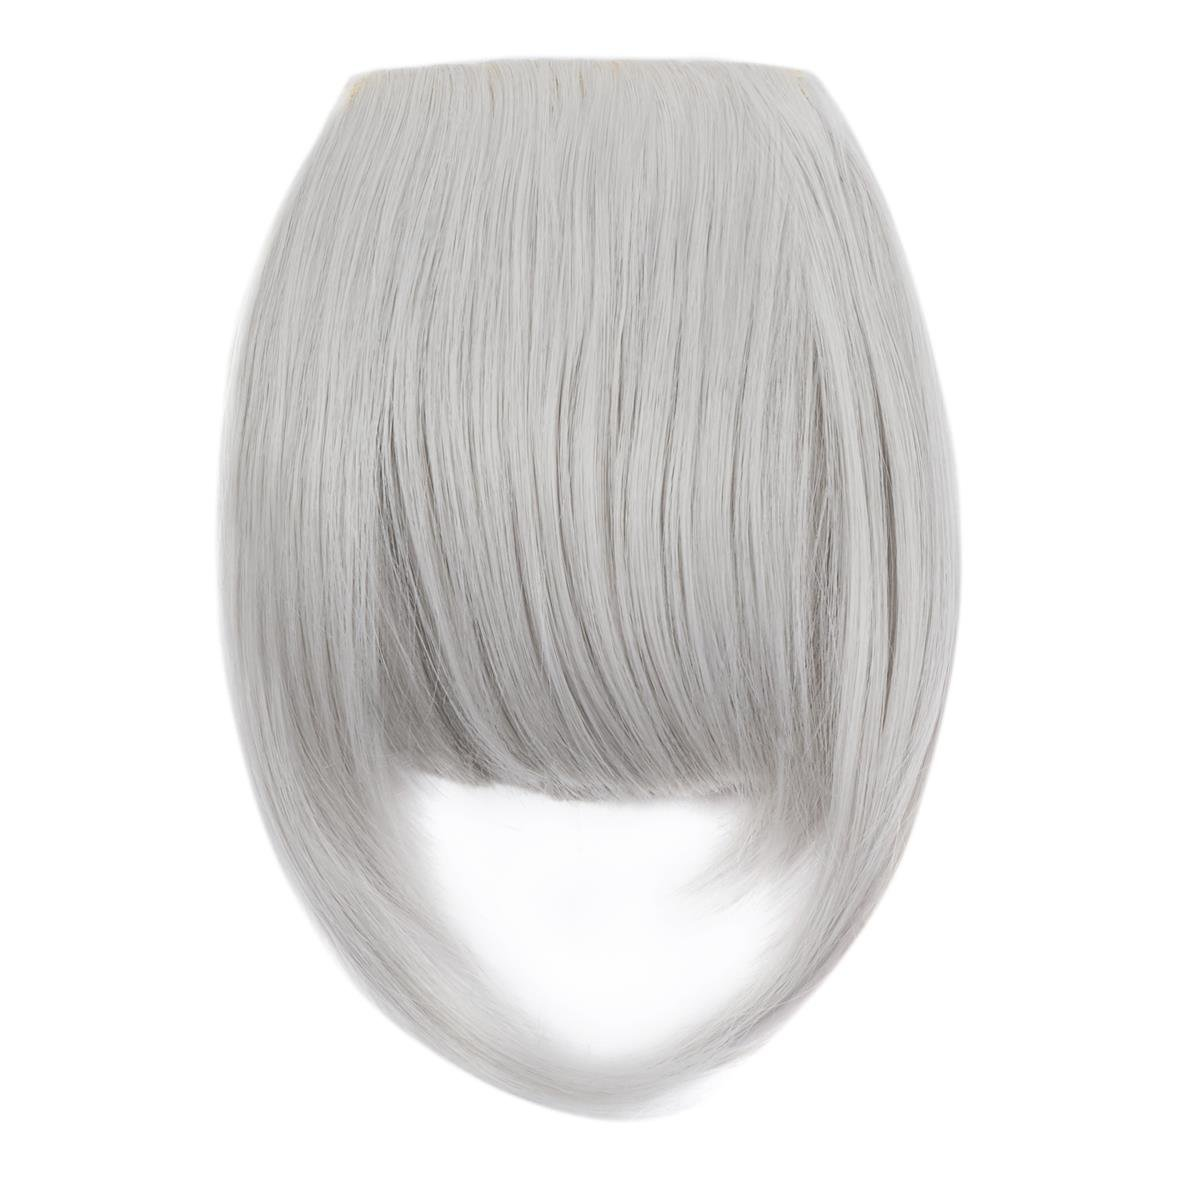 FOCUSSEXY Front Neat Hair Bangs Cosplay Synthetic Heat Resistant Natural Hair Wigs As Real Hair by FOCUSSEXY (Image #2)